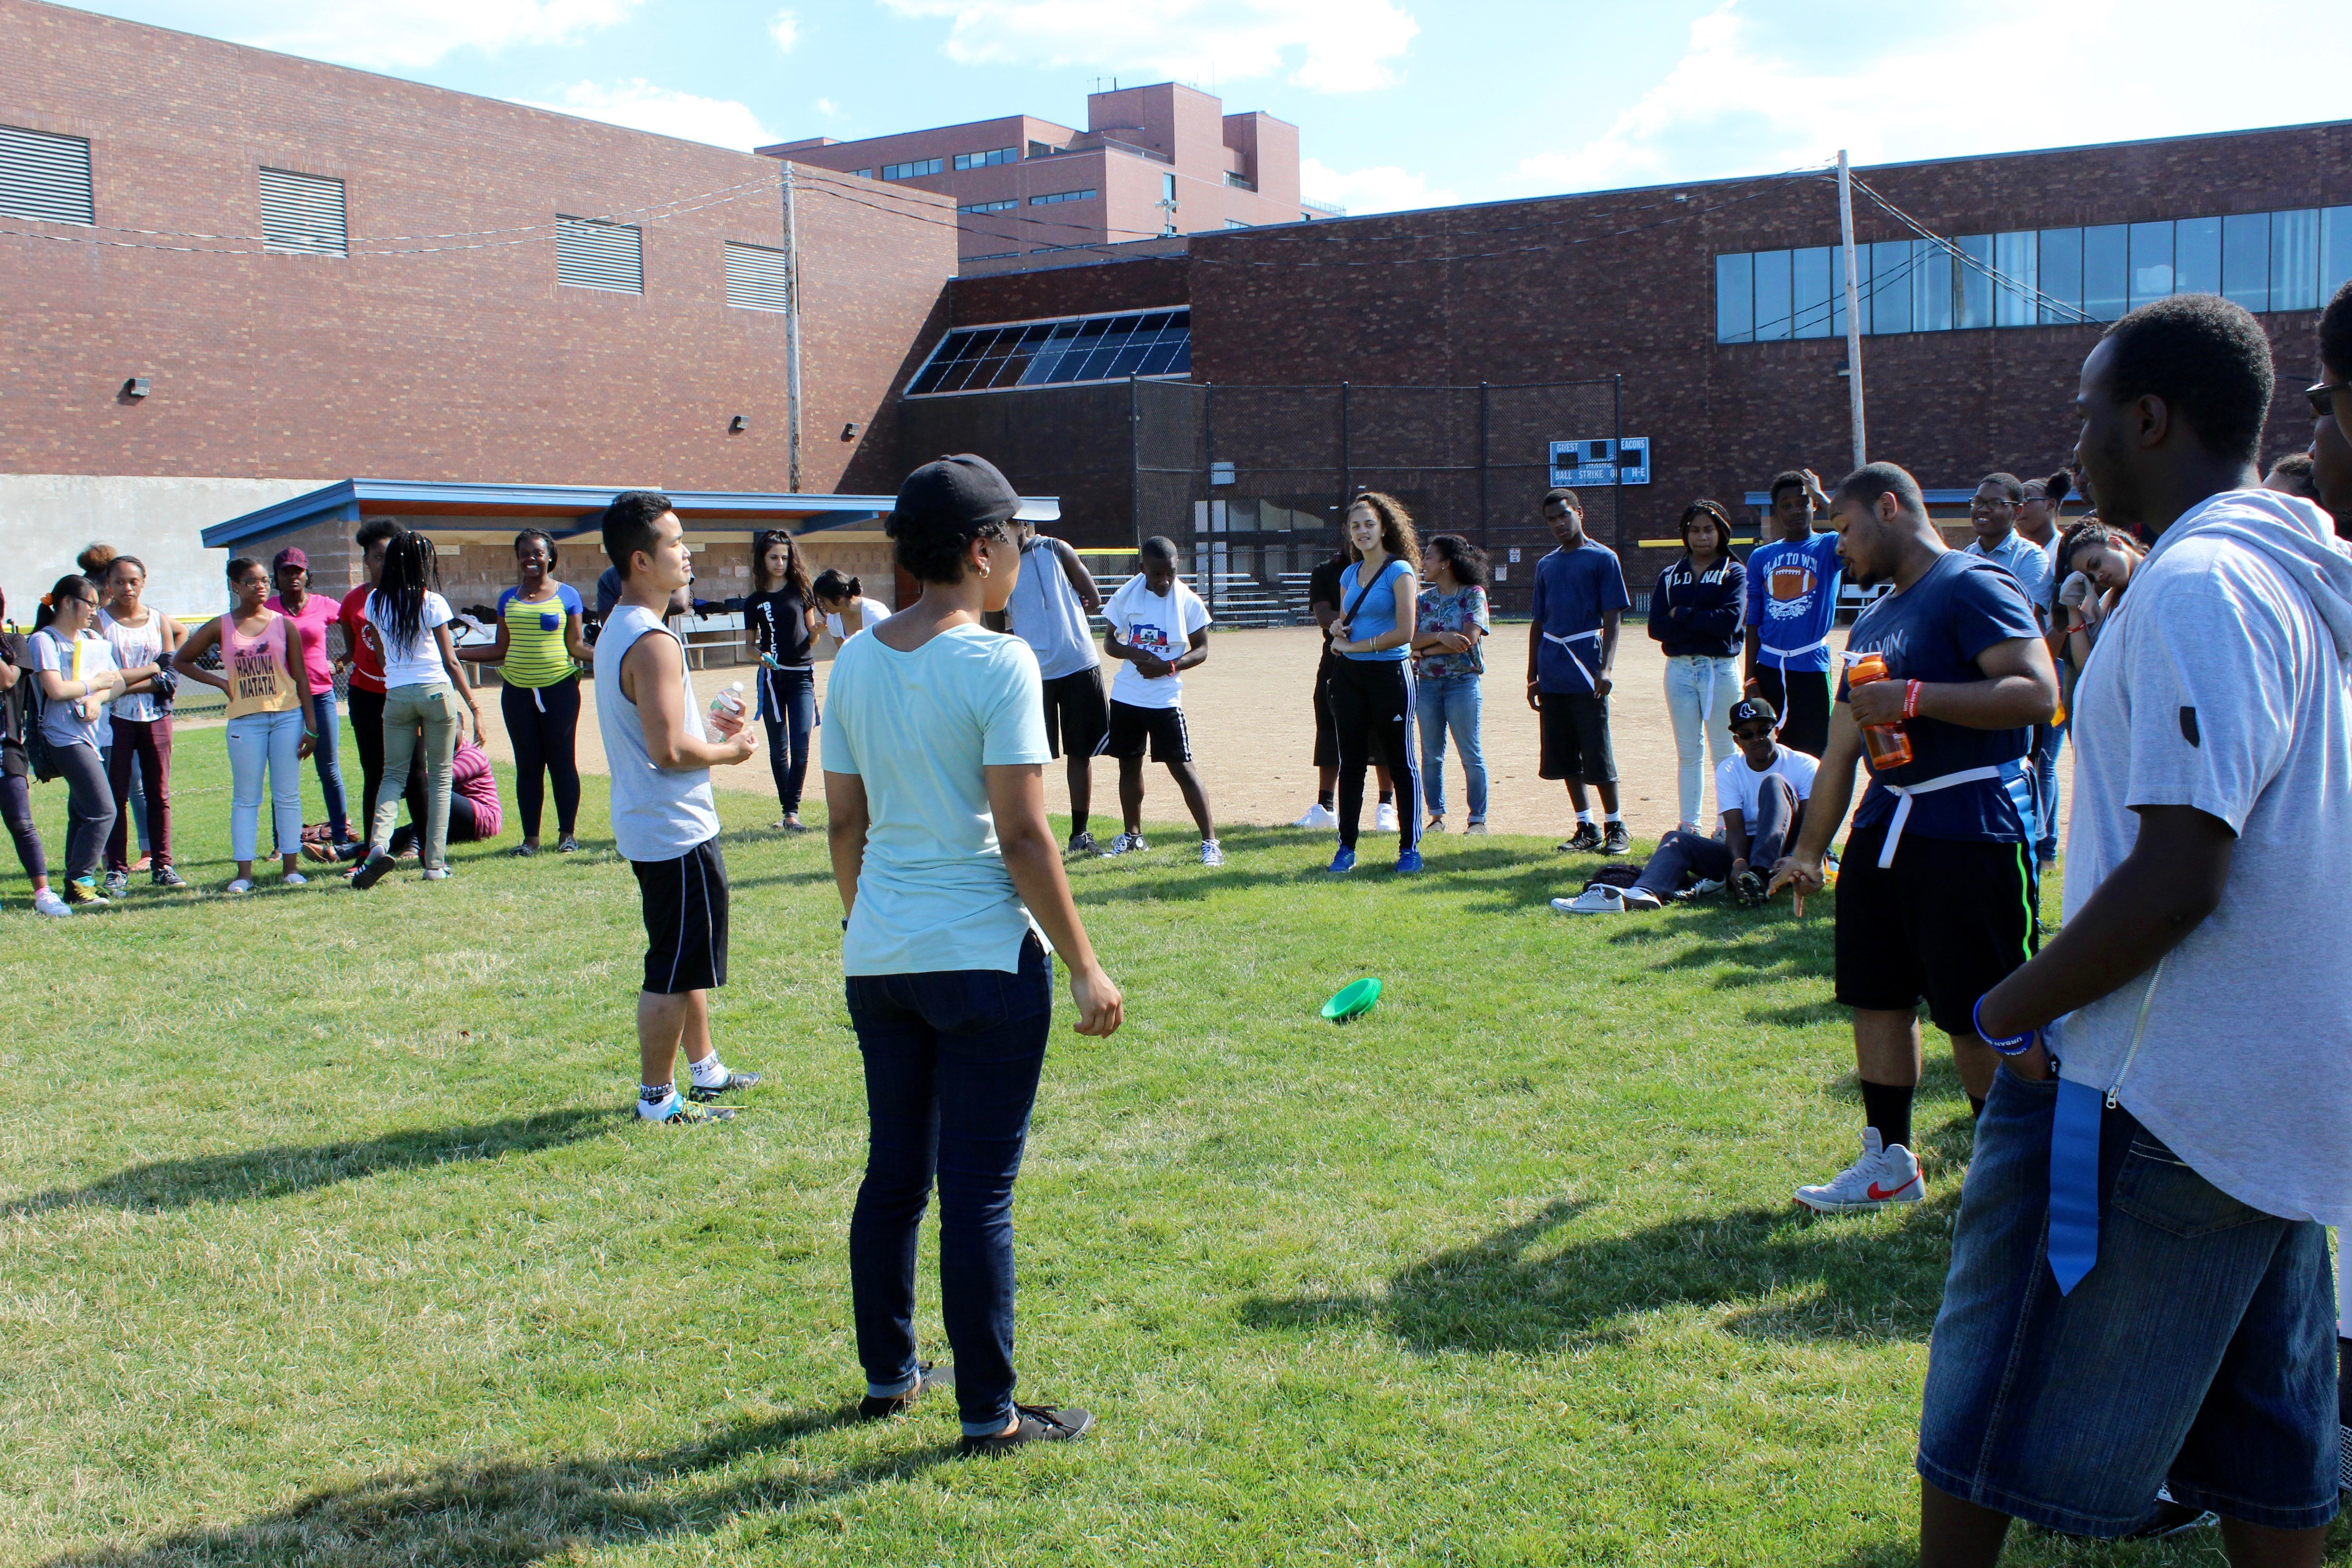 Suamy explained the game rules to students that had never played flag football.